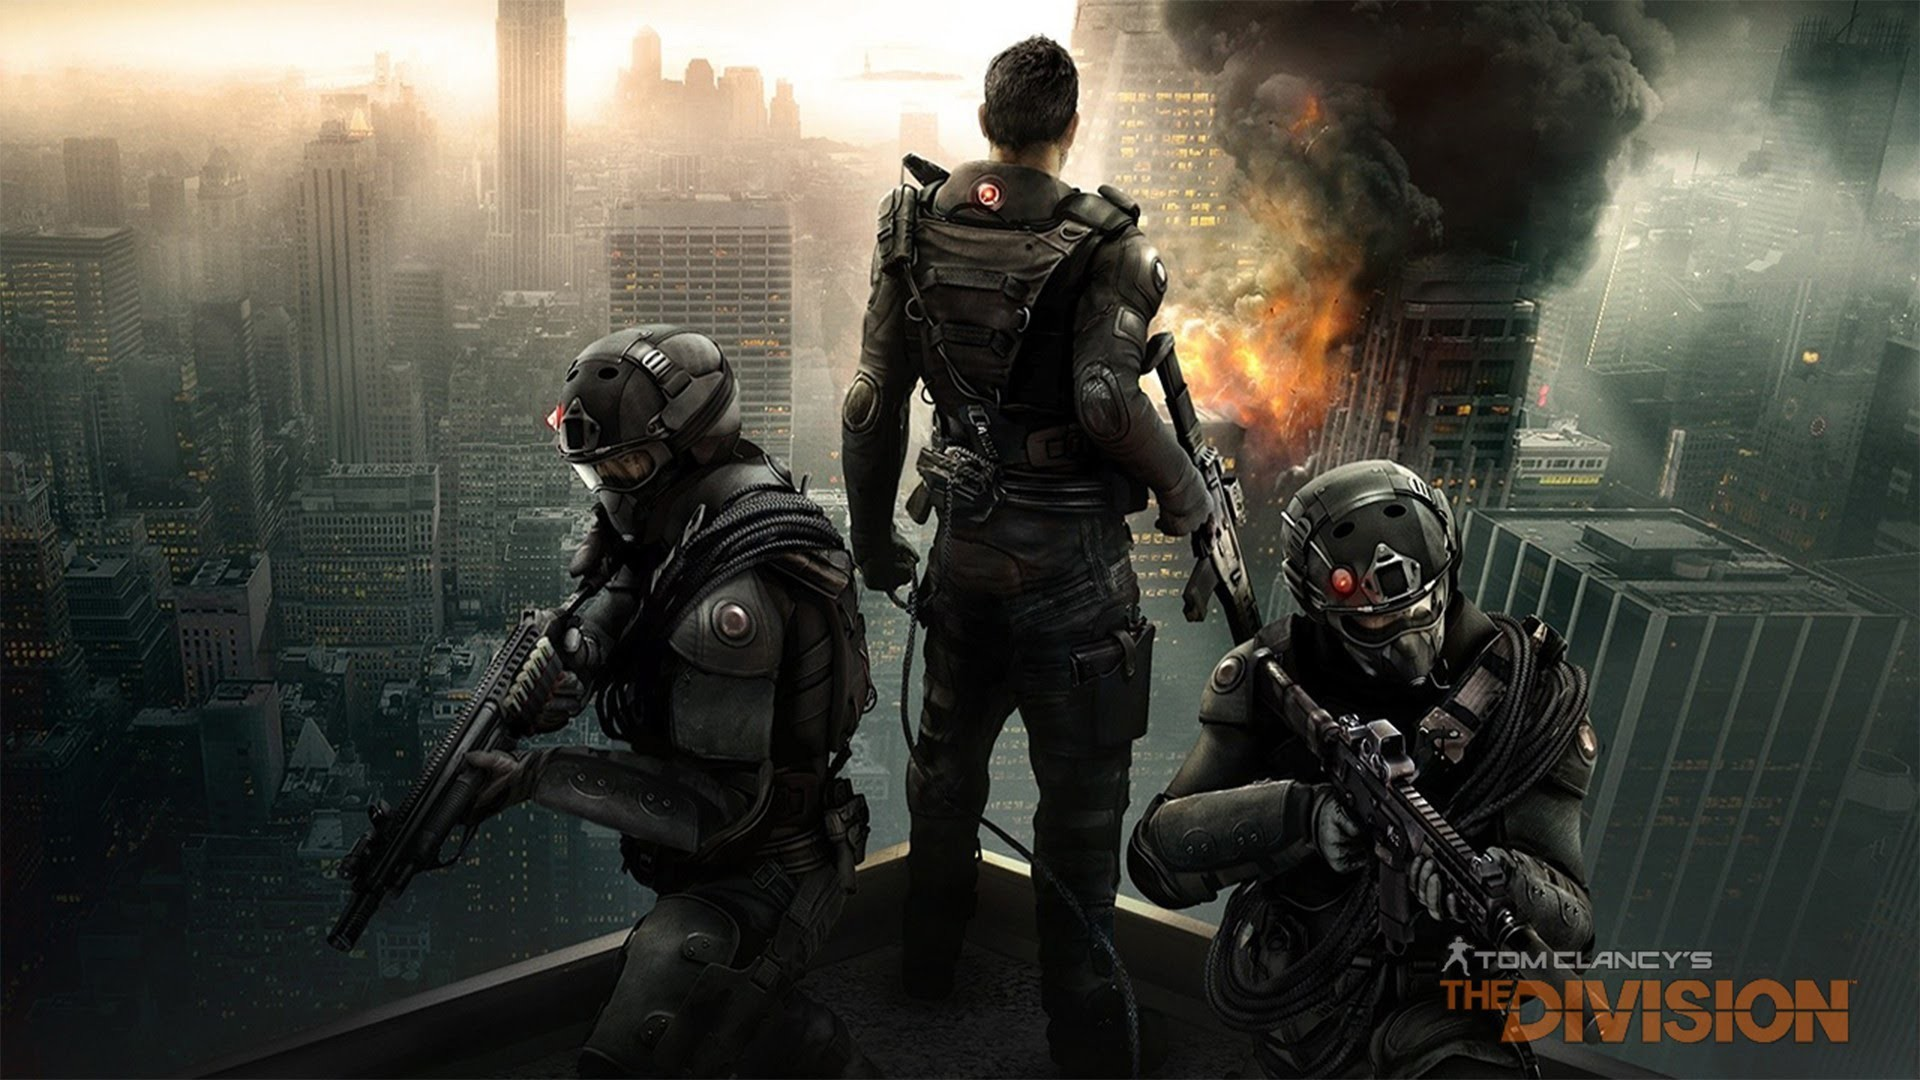 Download Original Size. ,. The Division Rooftop firefight …